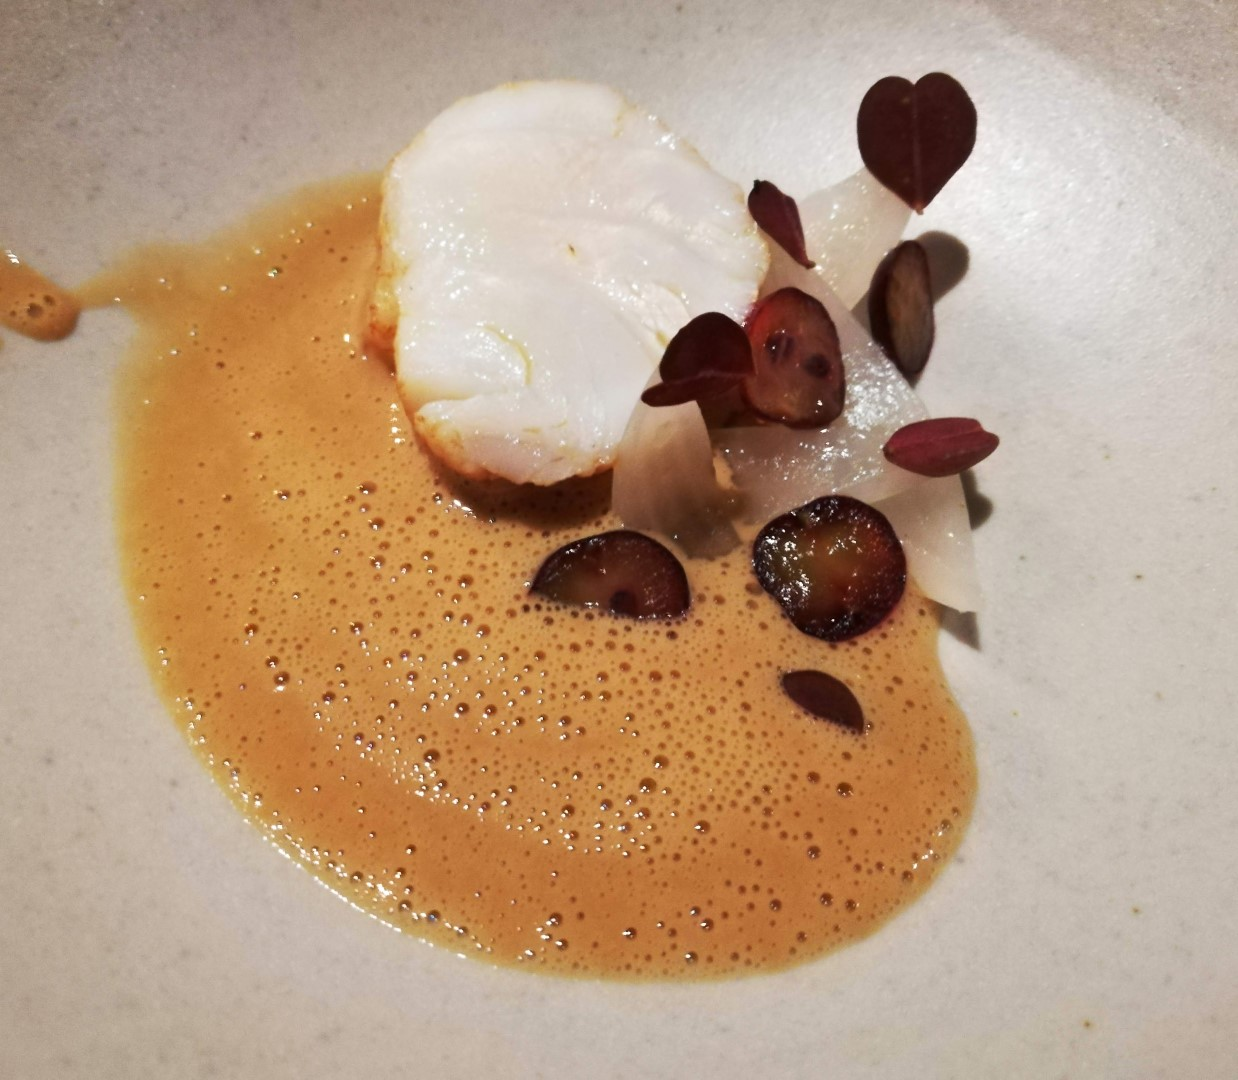 Piece of white fish in brown sauce